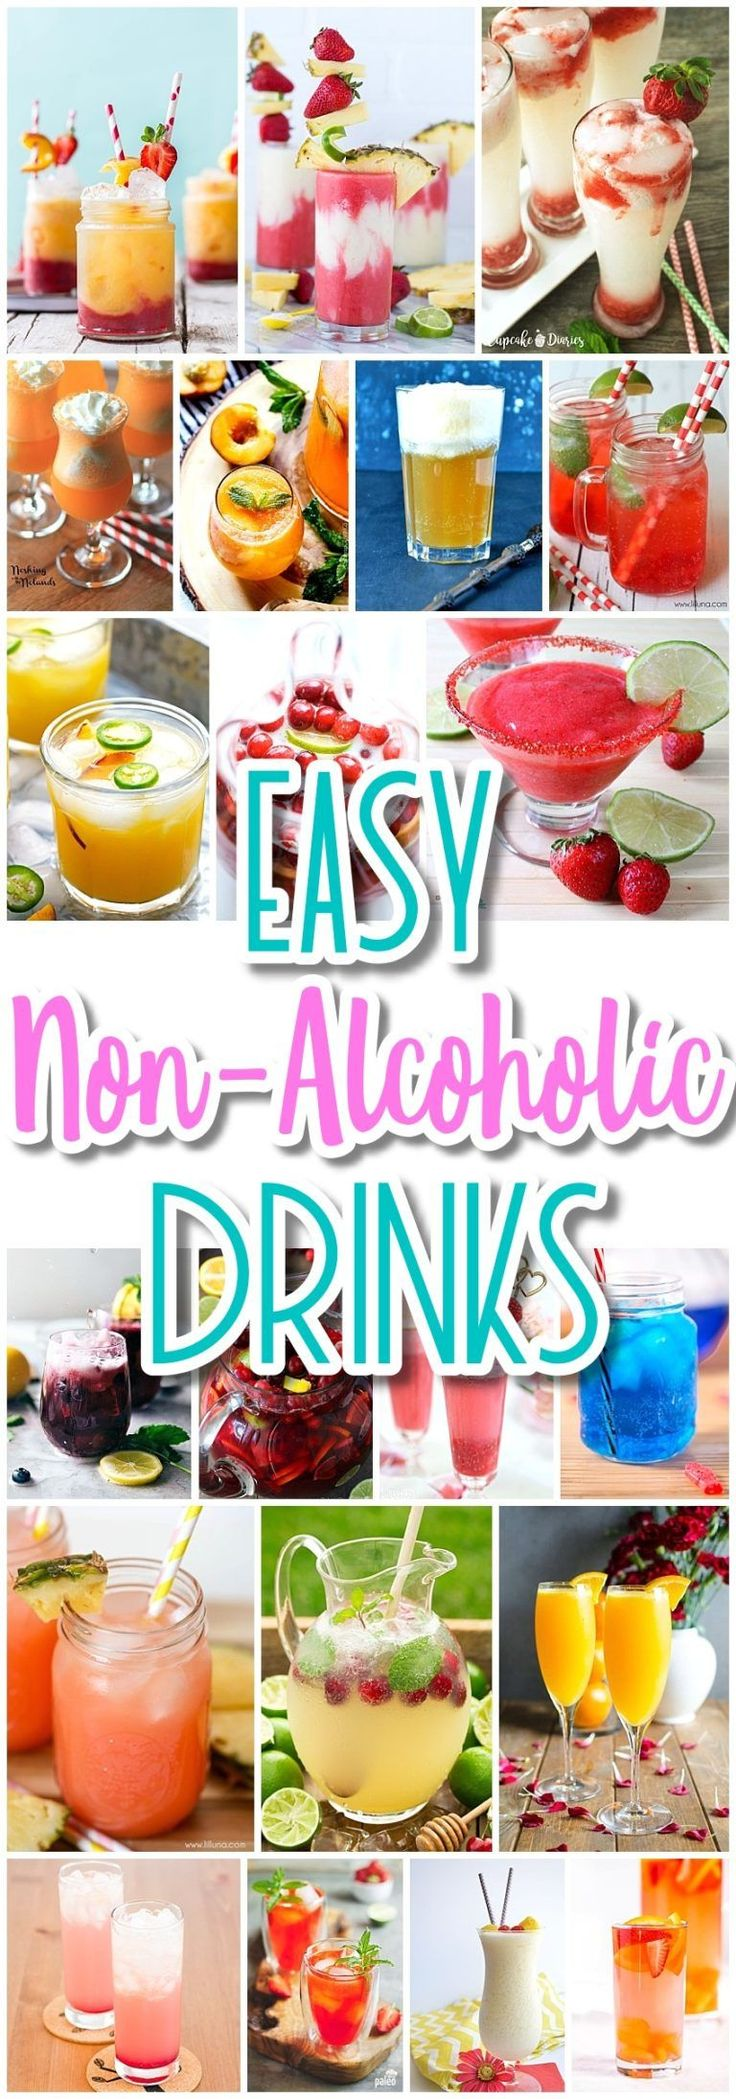 The BEST Easy Non-Alcoholic Drinks Recipes - Creative Mocktails and Family Friendly, Alcohol-Free, Big Batch Party Beverages for a Crowd! - Dreaming in DIY  #virgindrinks #familyfriendlydrinks #nonalcoholicdrinks #alcoholfreedrinks #partydrinks